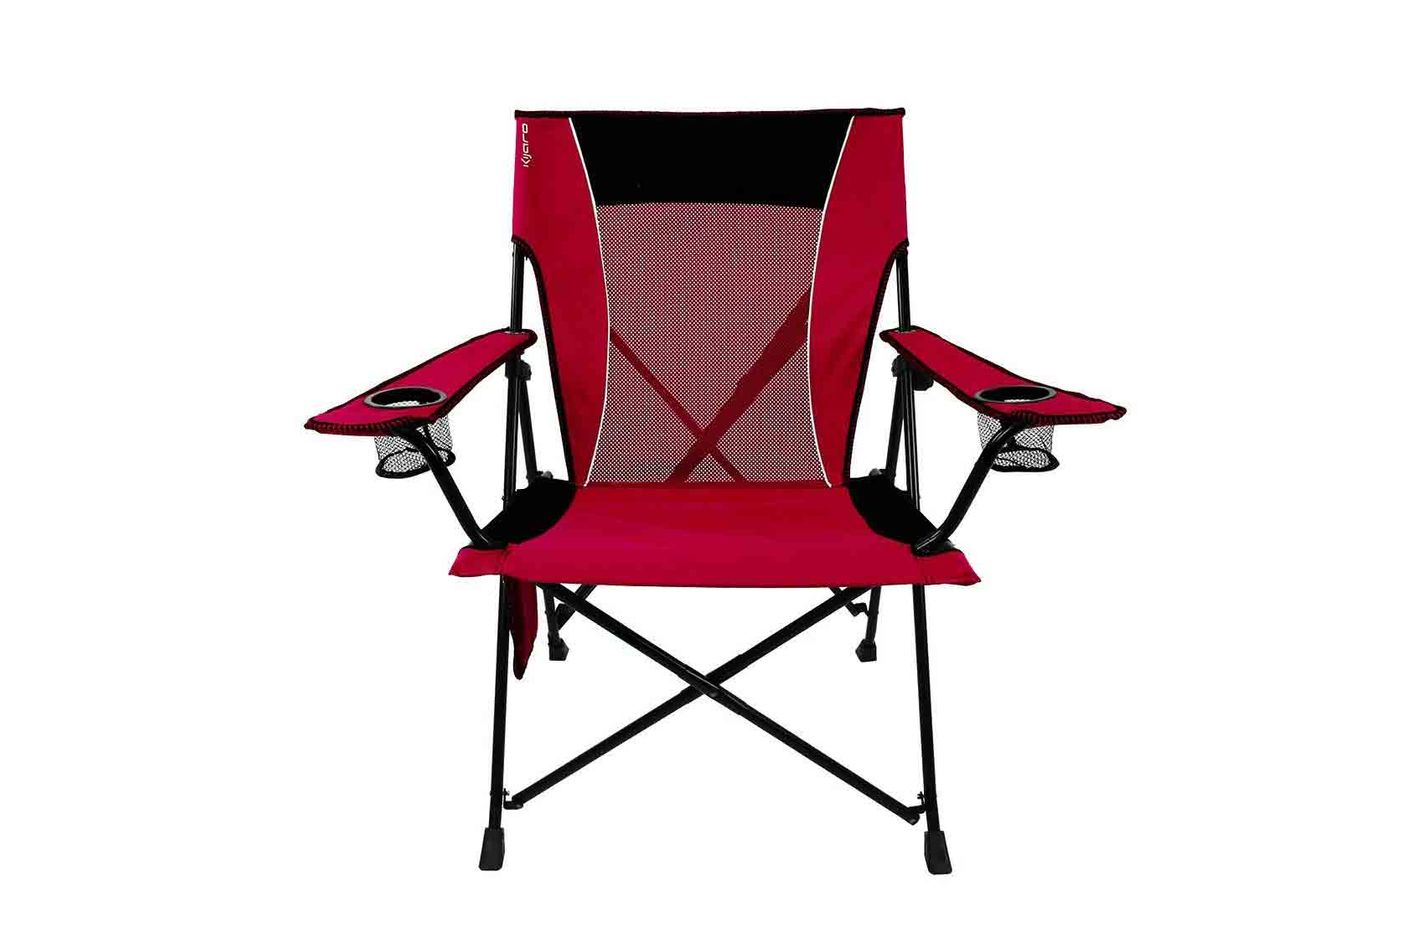 Kijaro Dual Lock Chair at Amazon  sc 1 st  NYMag & The 5 Best Beach Chairs